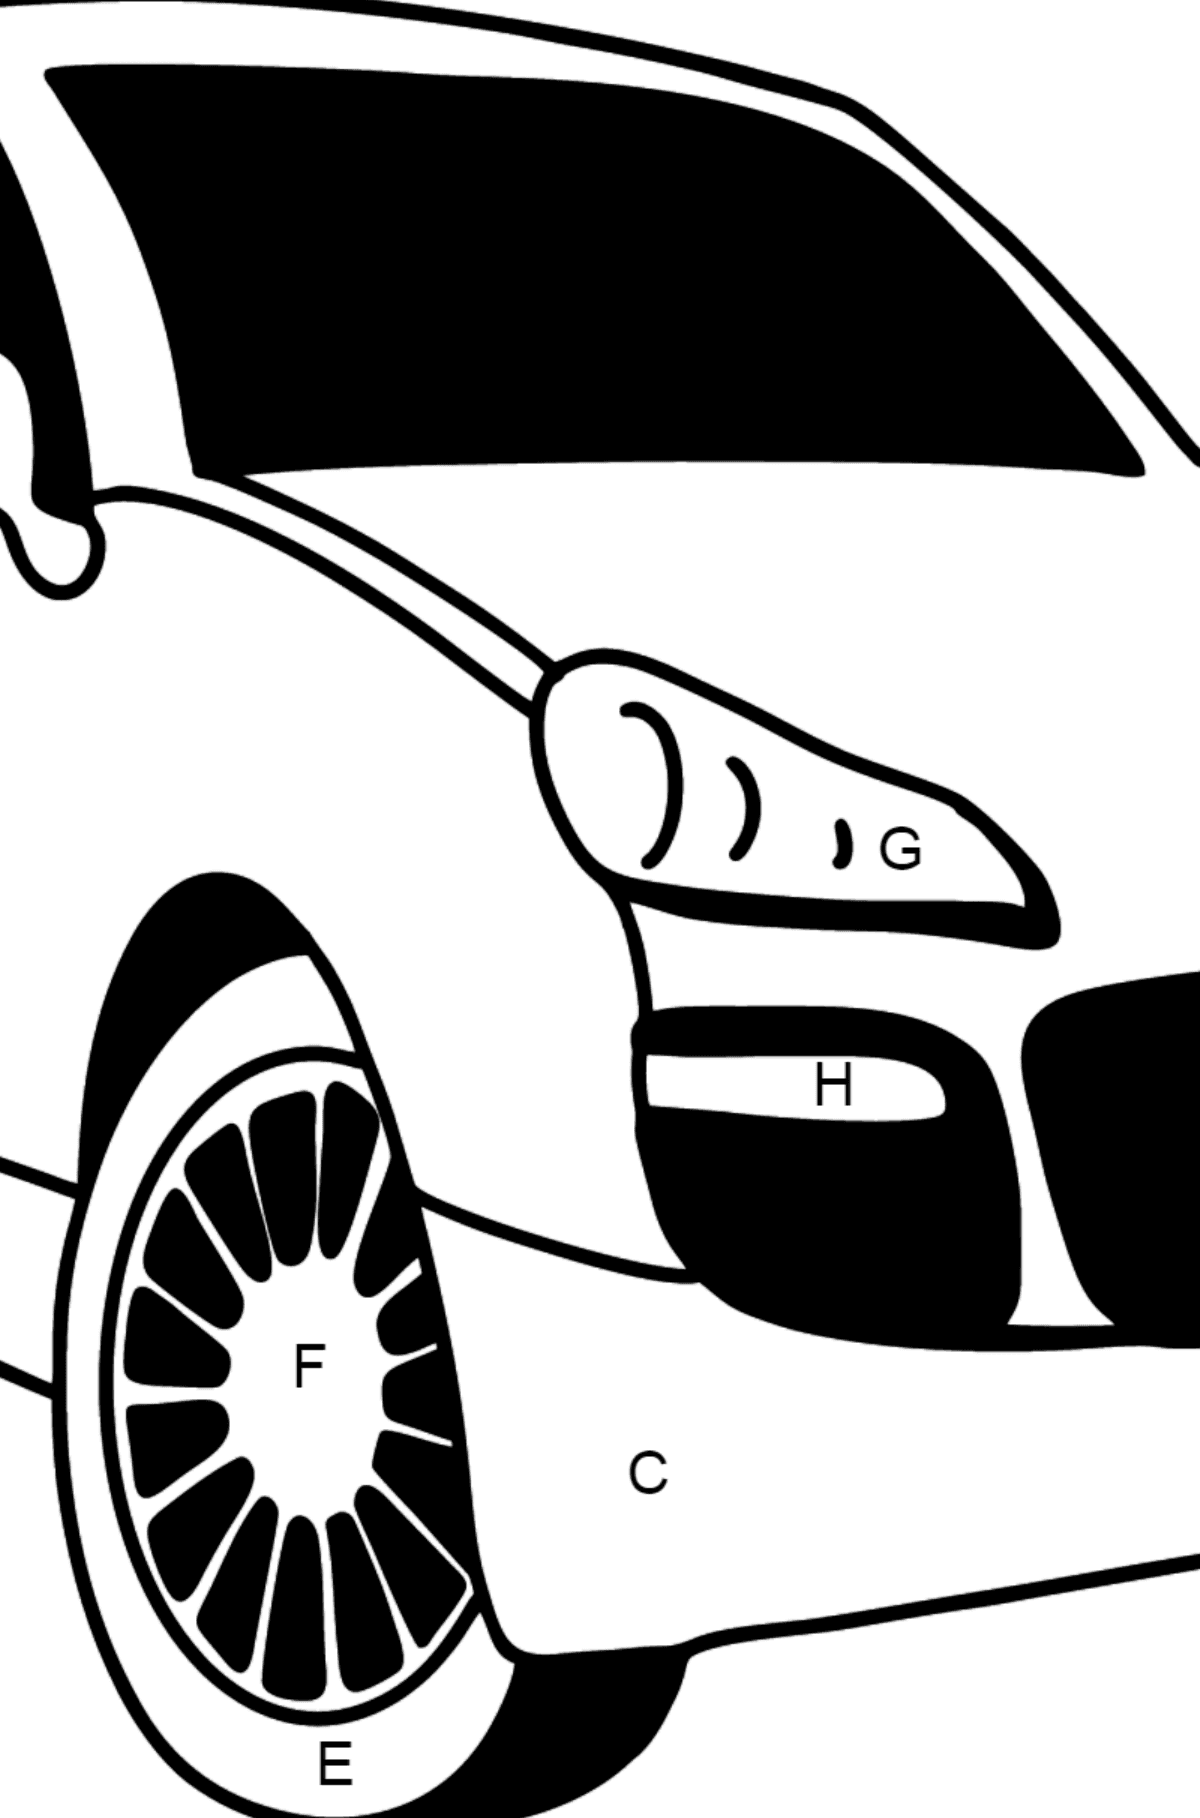 Porsche Cayenne Crossover coloring page - Coloring by Letters for Kids